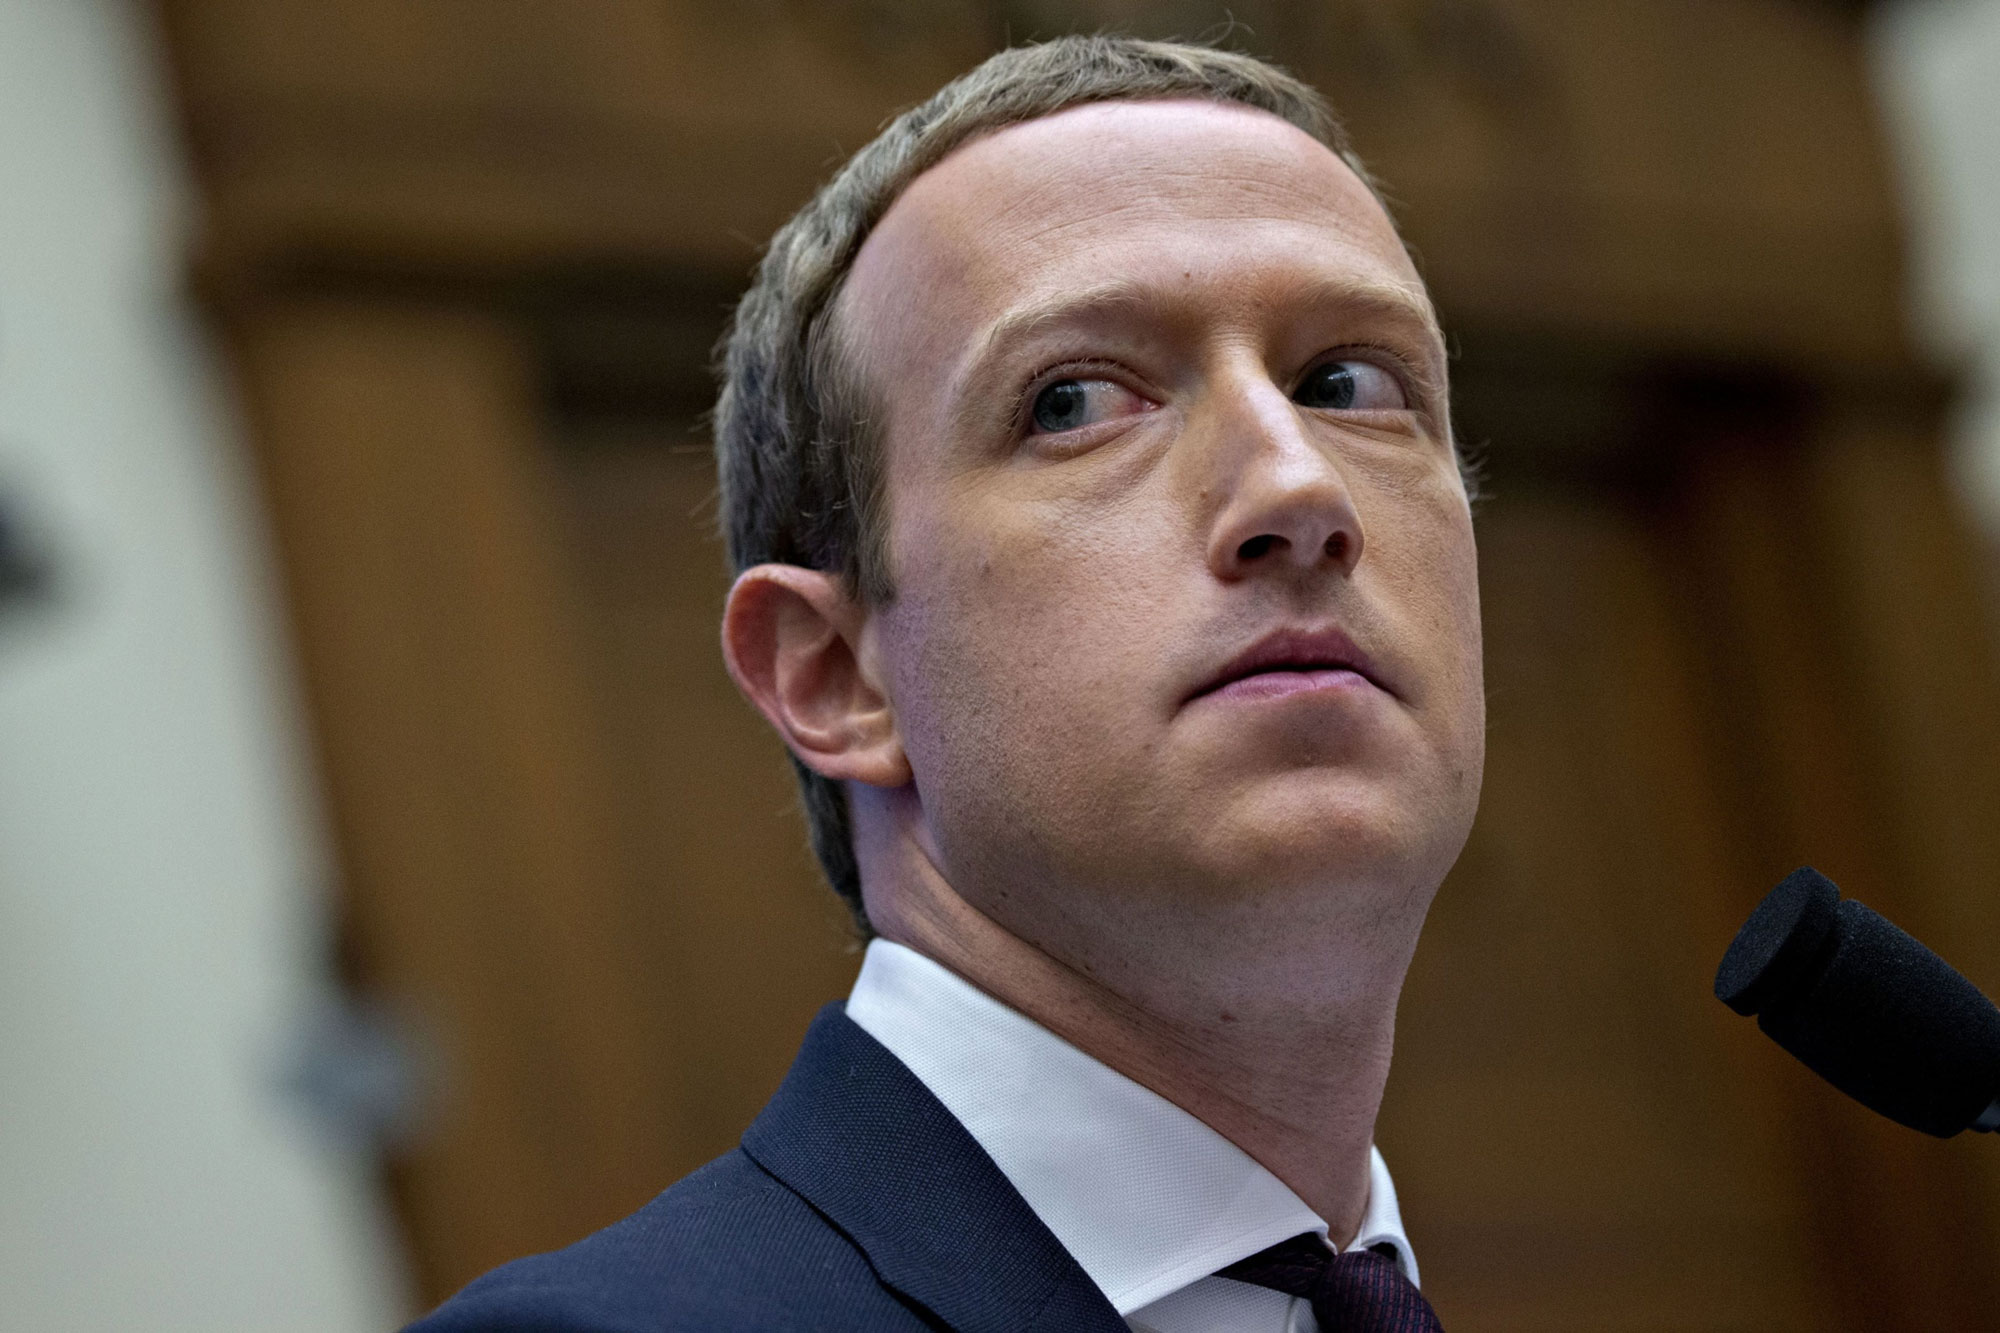 Facebook used data to leverage friends, competitors, court documents allege